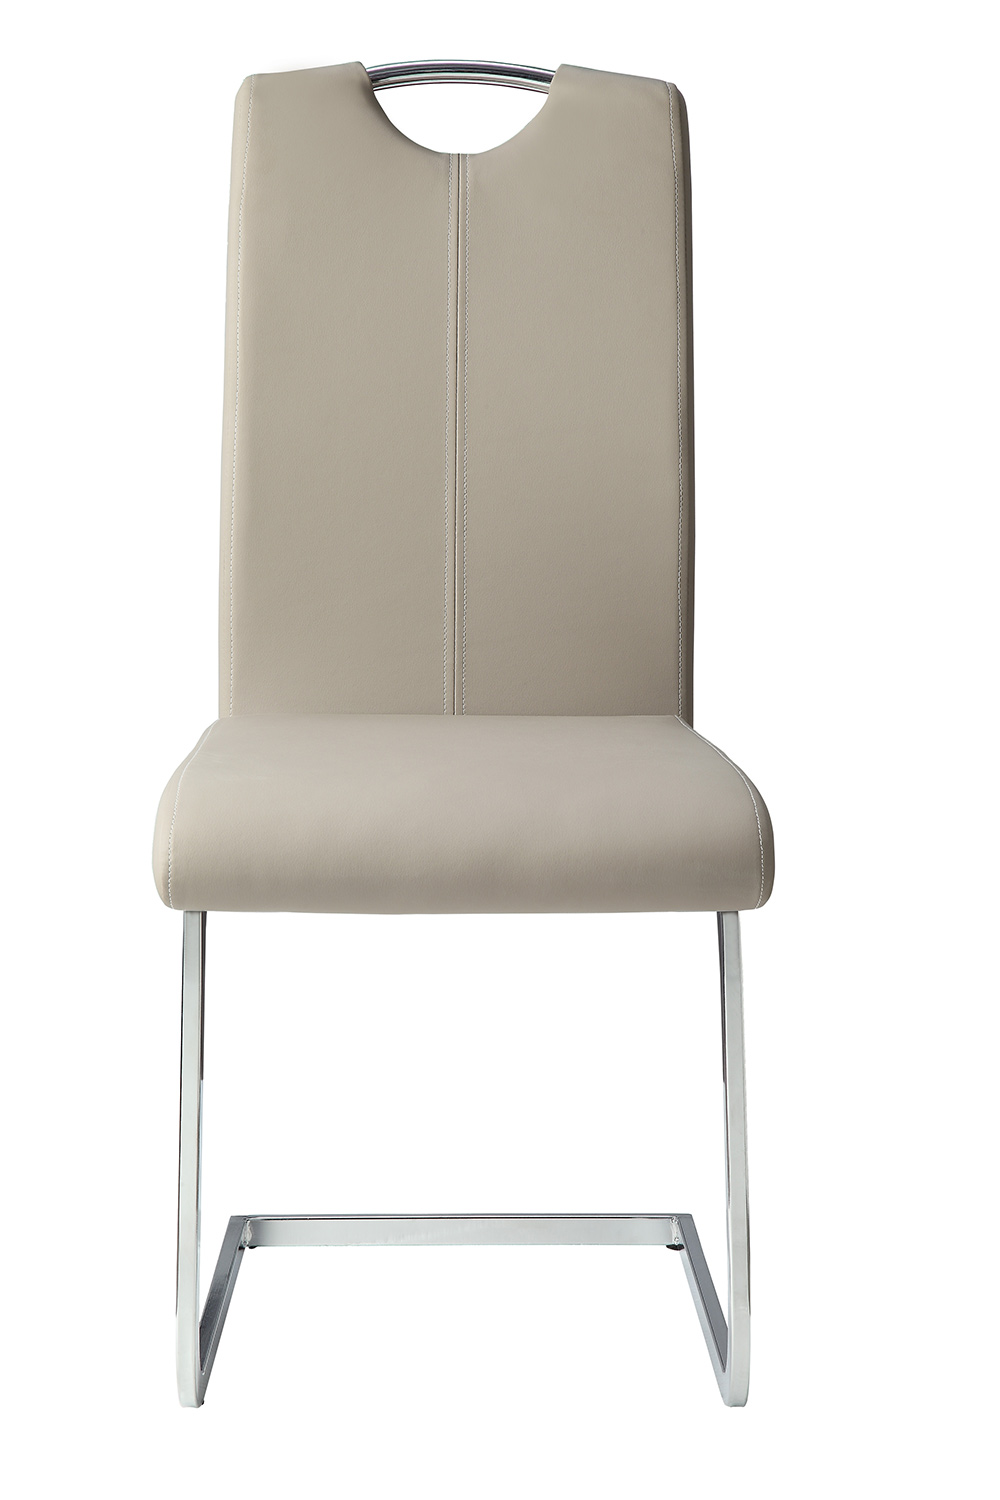 Homelegance Glissand Side Chair - Glossy - Grey-Taupe Bi-Cast Vinyl